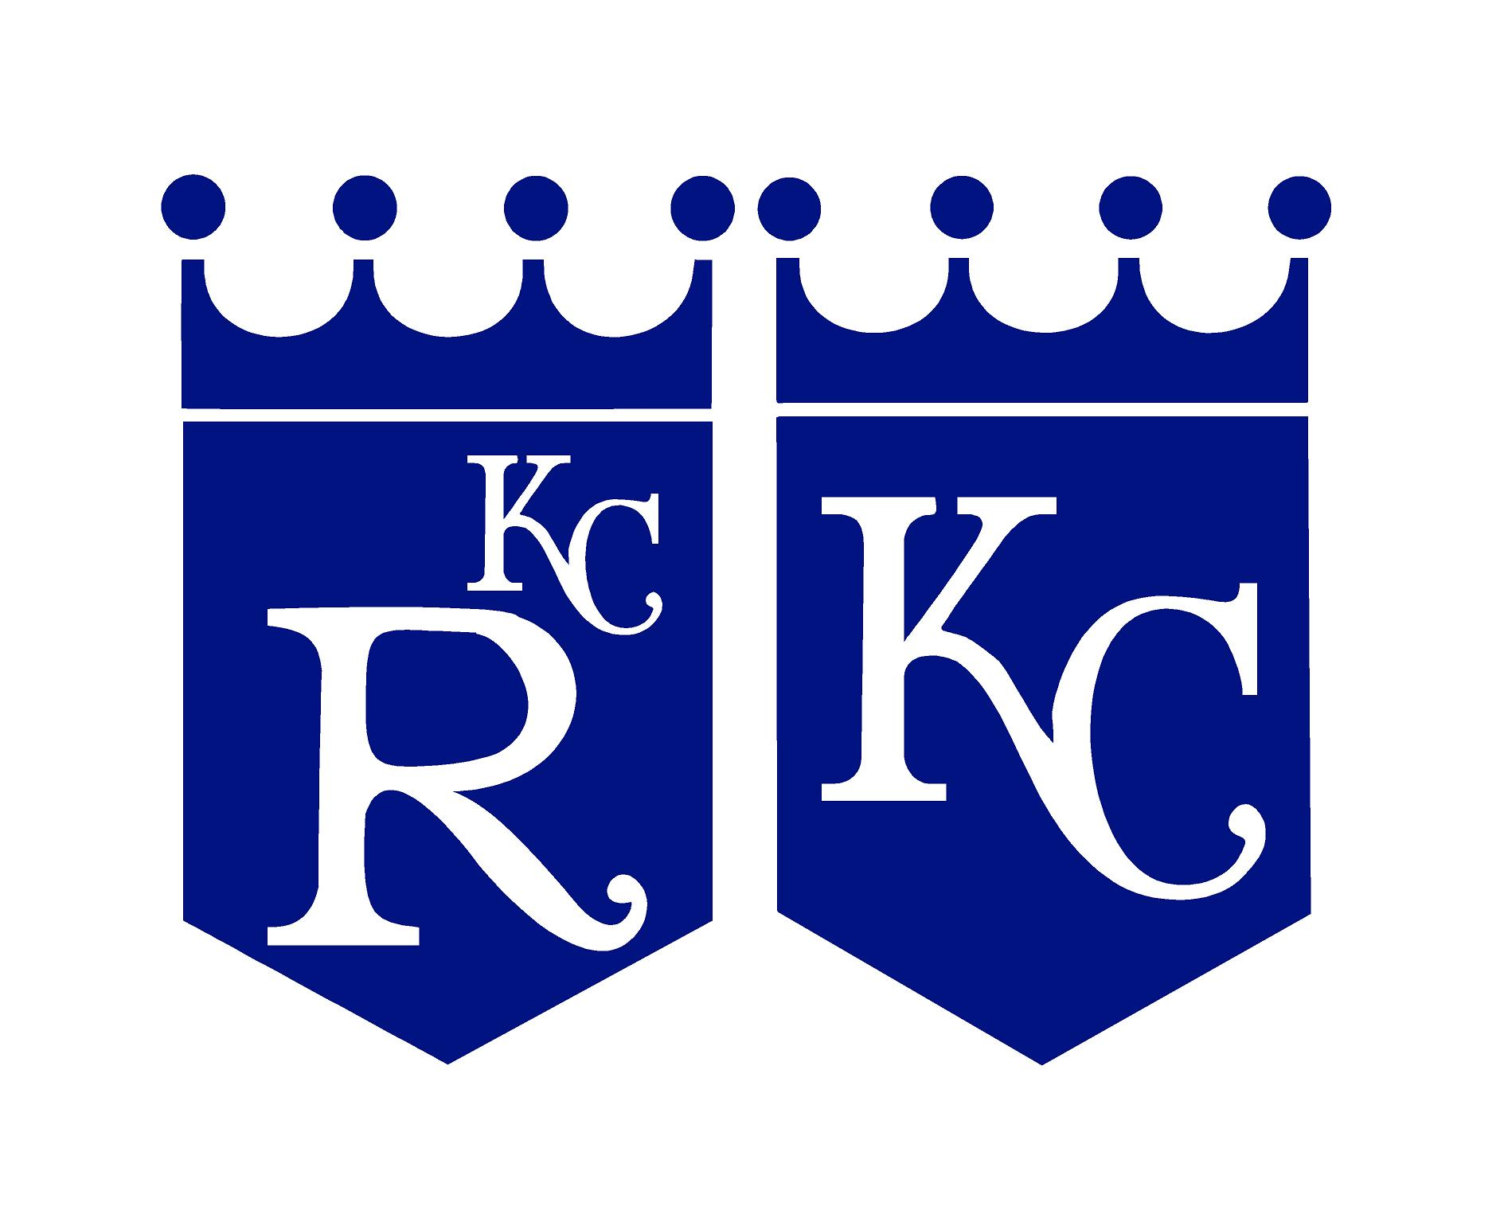 Kansas city royals clipart 4 » Clipart Station.